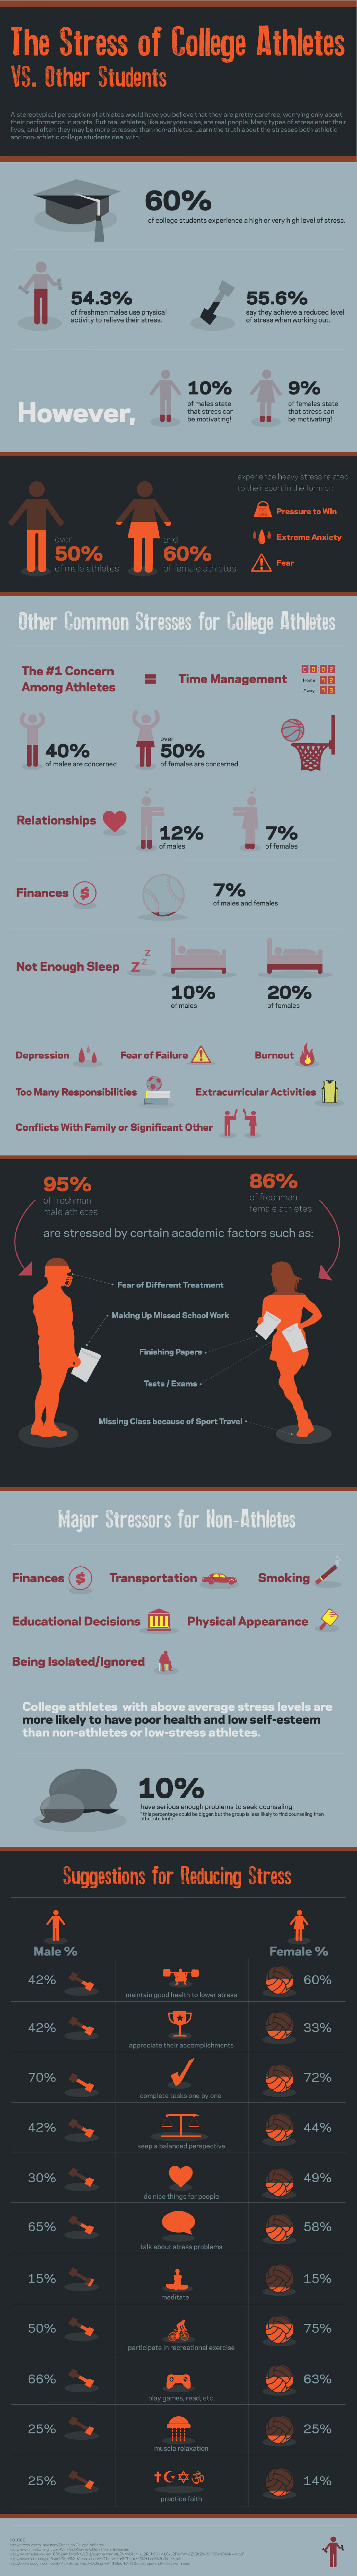 Stress of College Athletes vs. Other Students Infographic